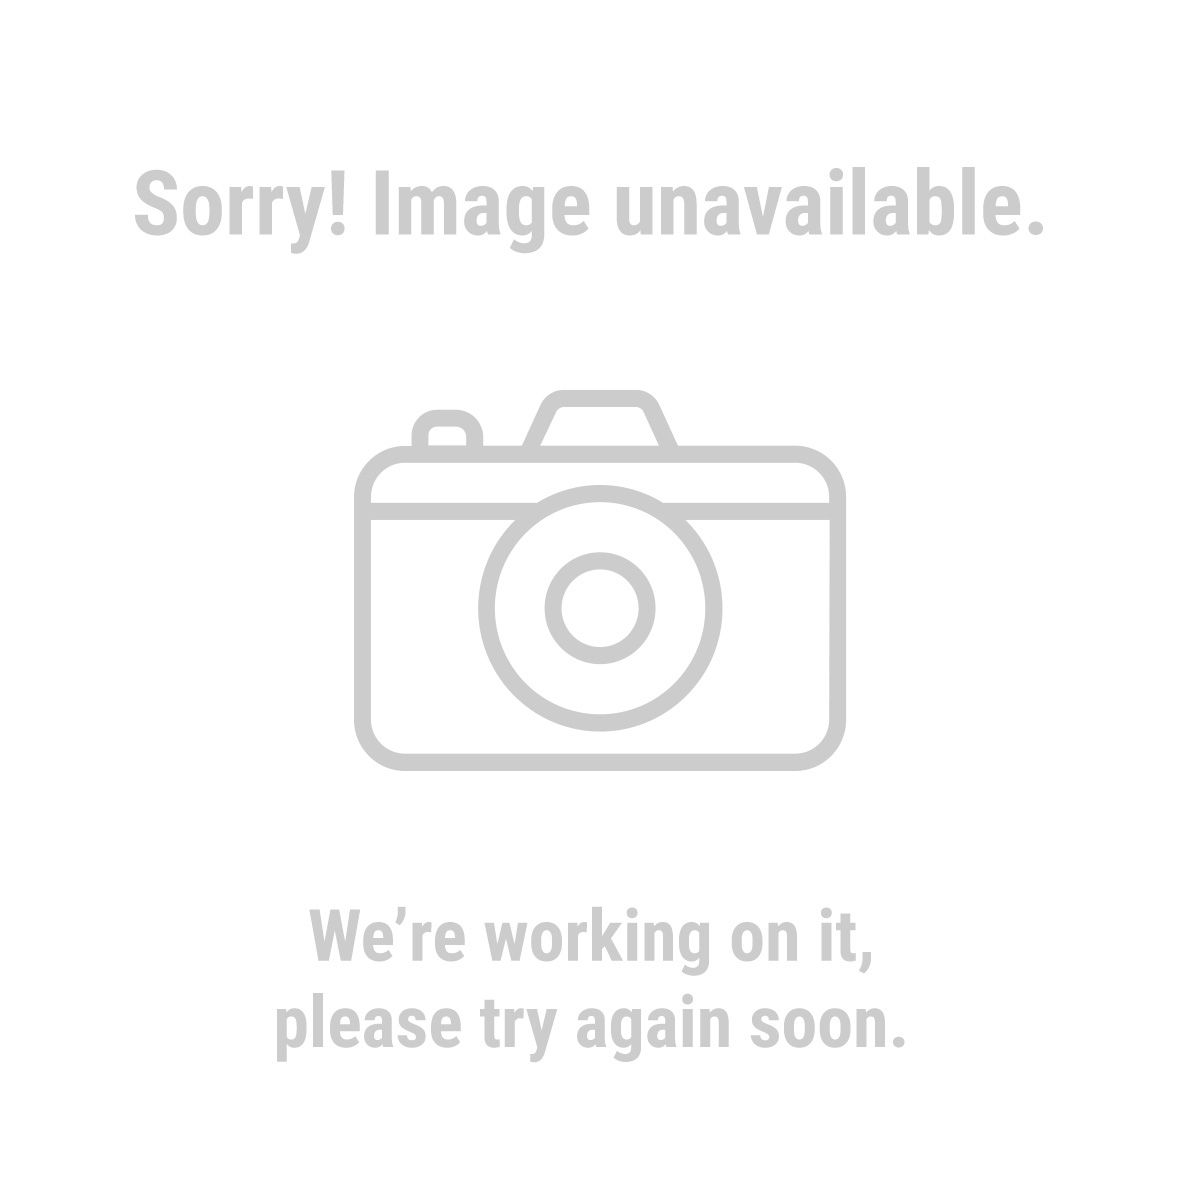 Goop 43222 1 Gallon Citrus Hand Cleaner with Hand Pump